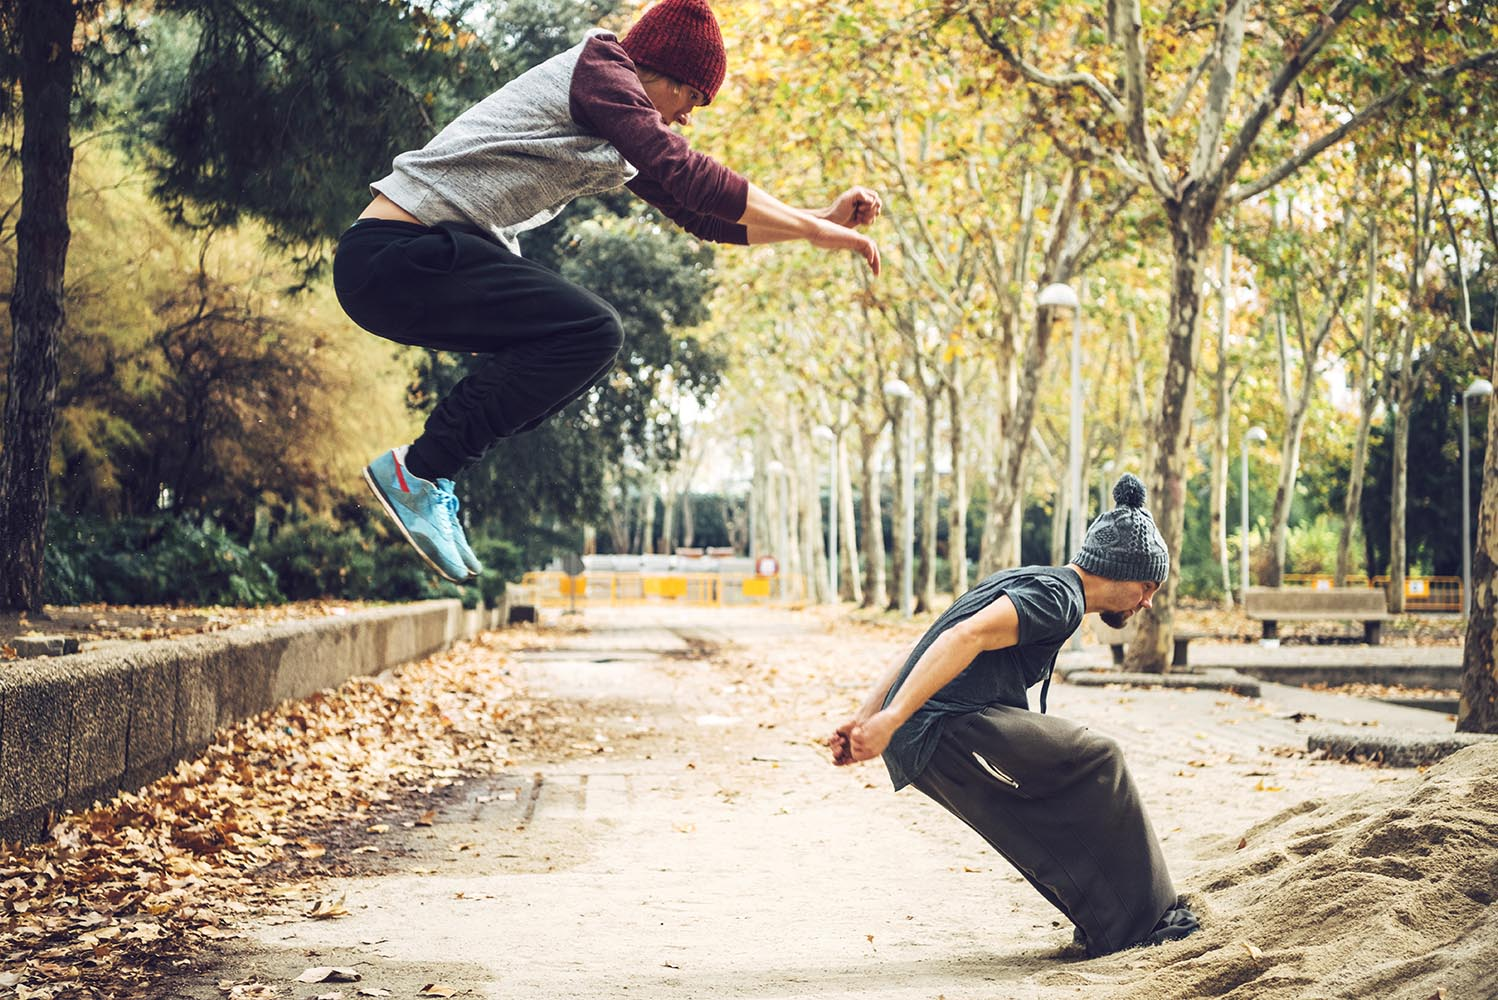 Two men training parkour in park